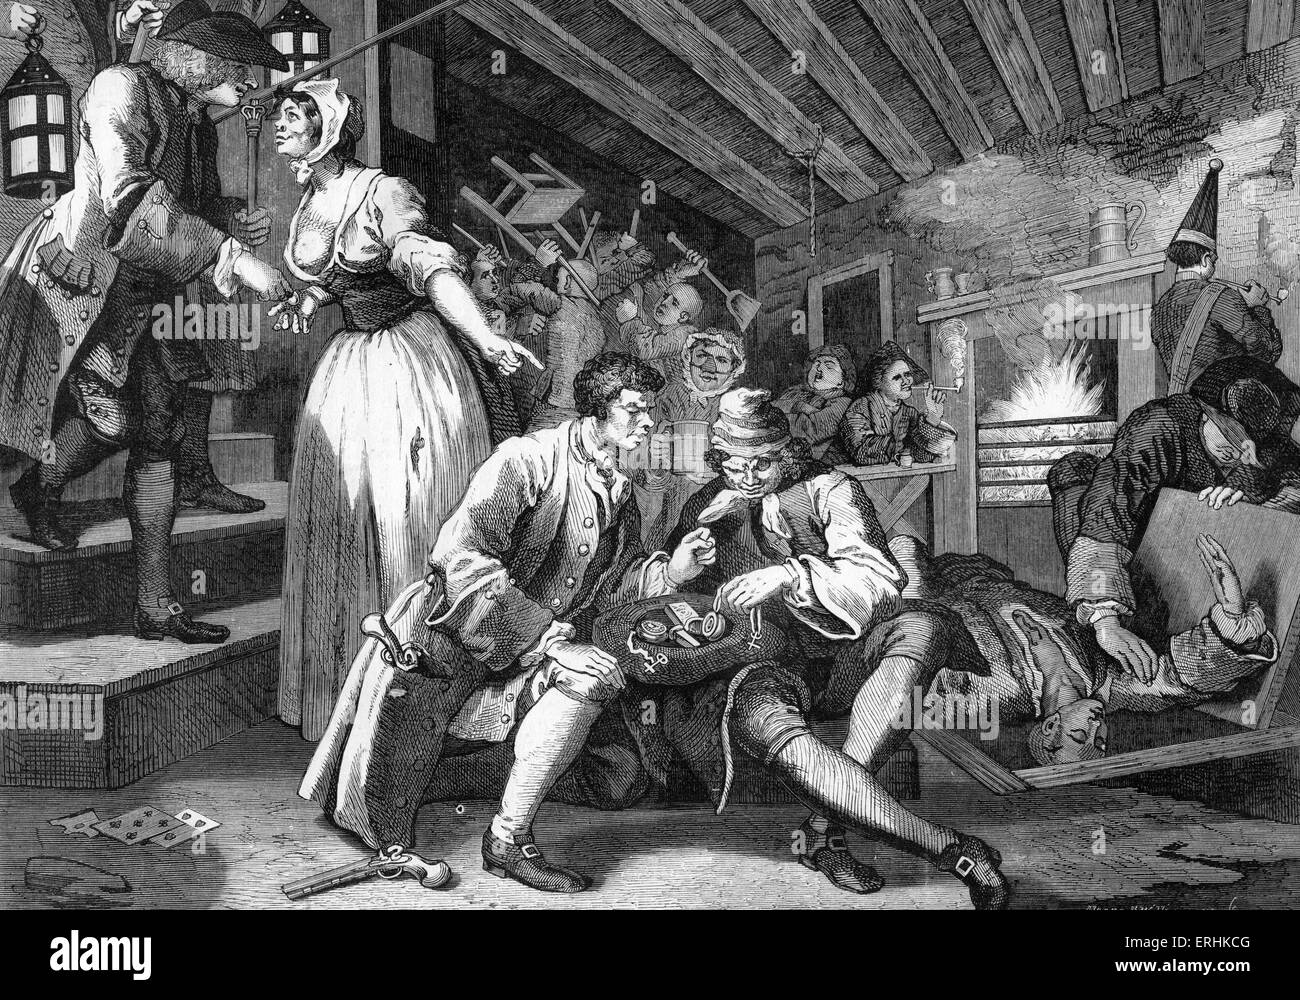 The Thieves Den by William Hogarth - printed by A H Payne. Engraving from moral series  'Industry and Idleness' - Stock Image